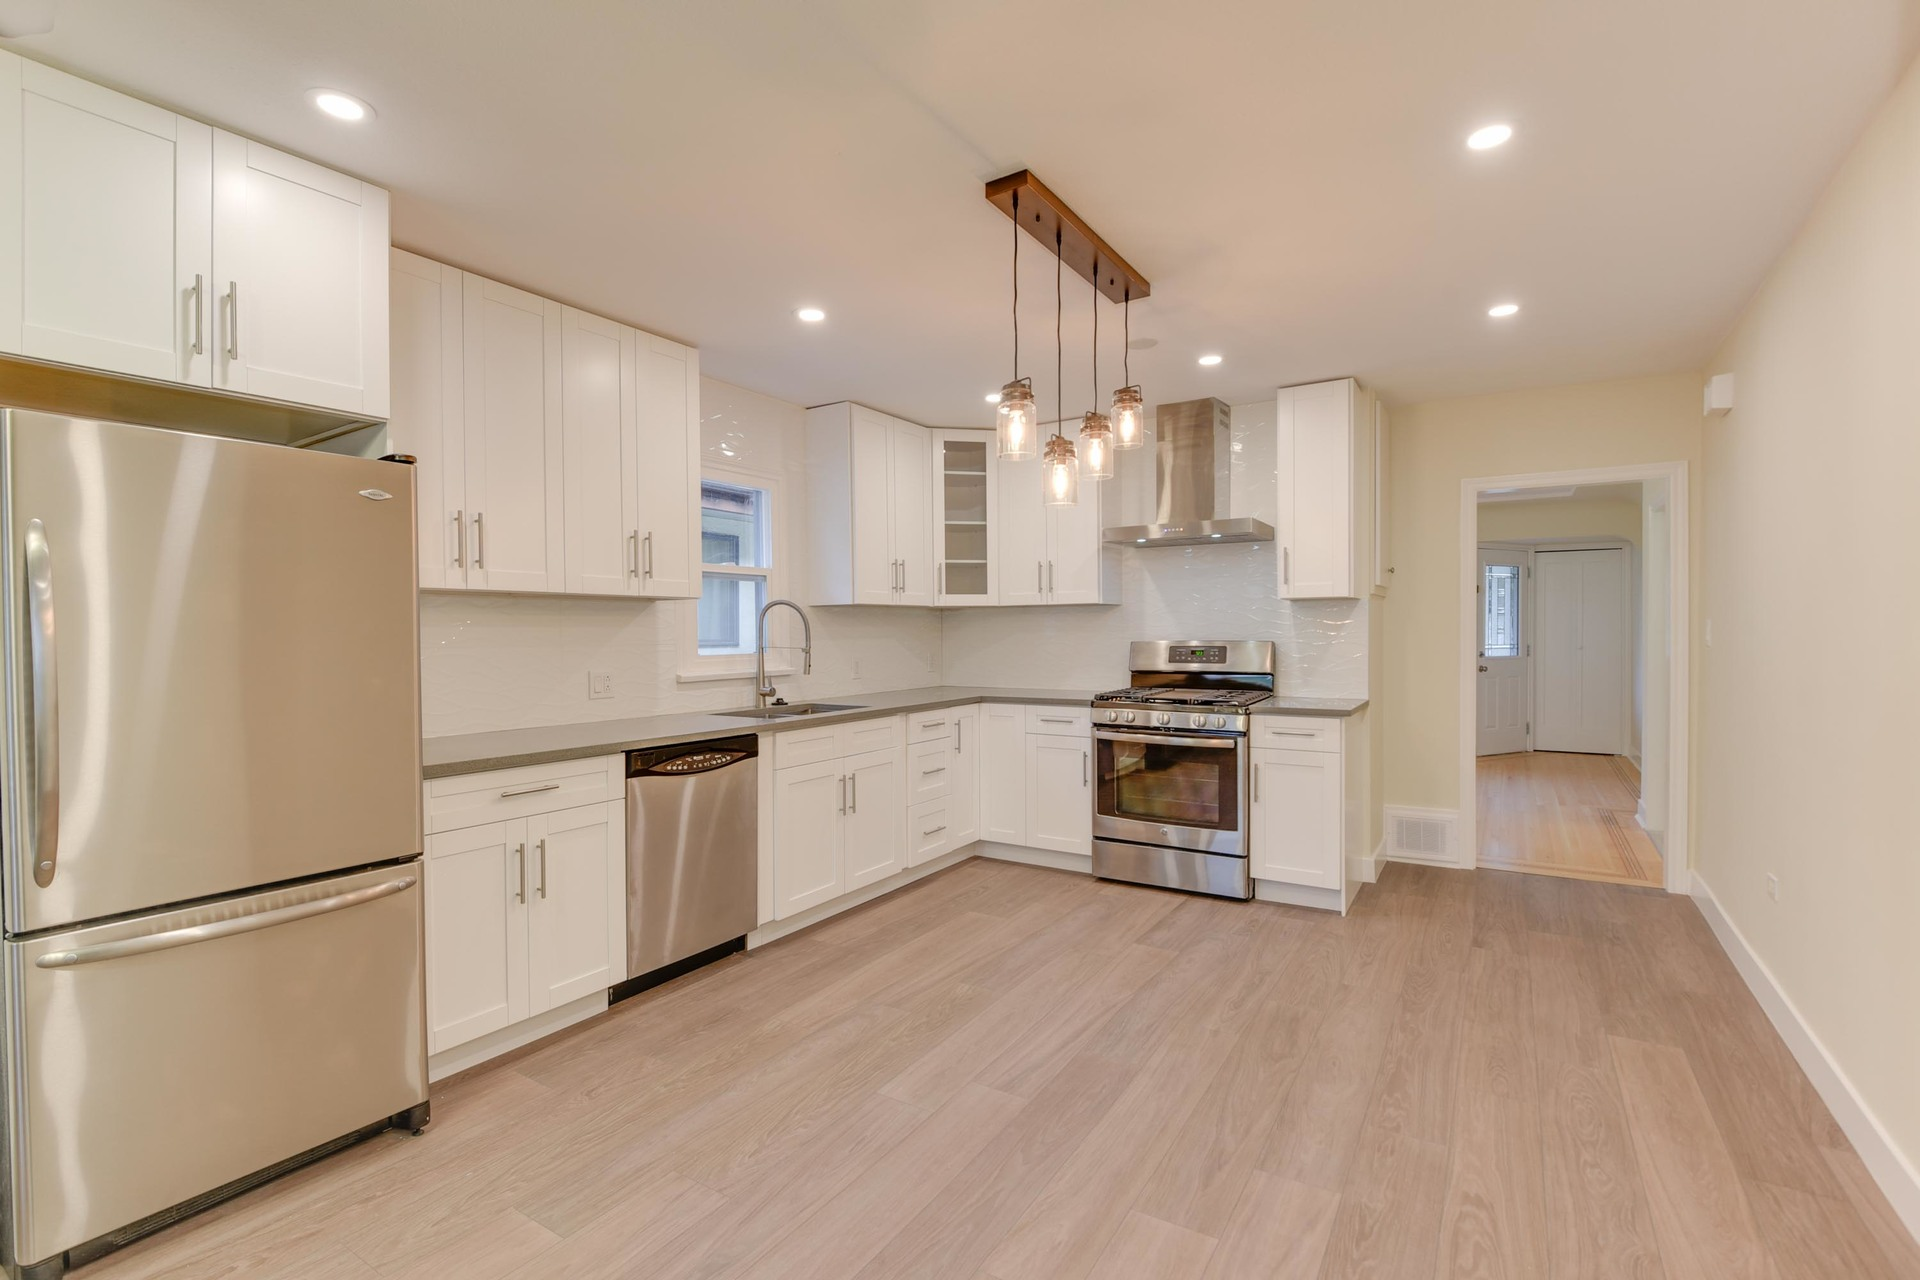 13-1-of-1 at 1285 East 18th Avenue, Knight, Vancouver East